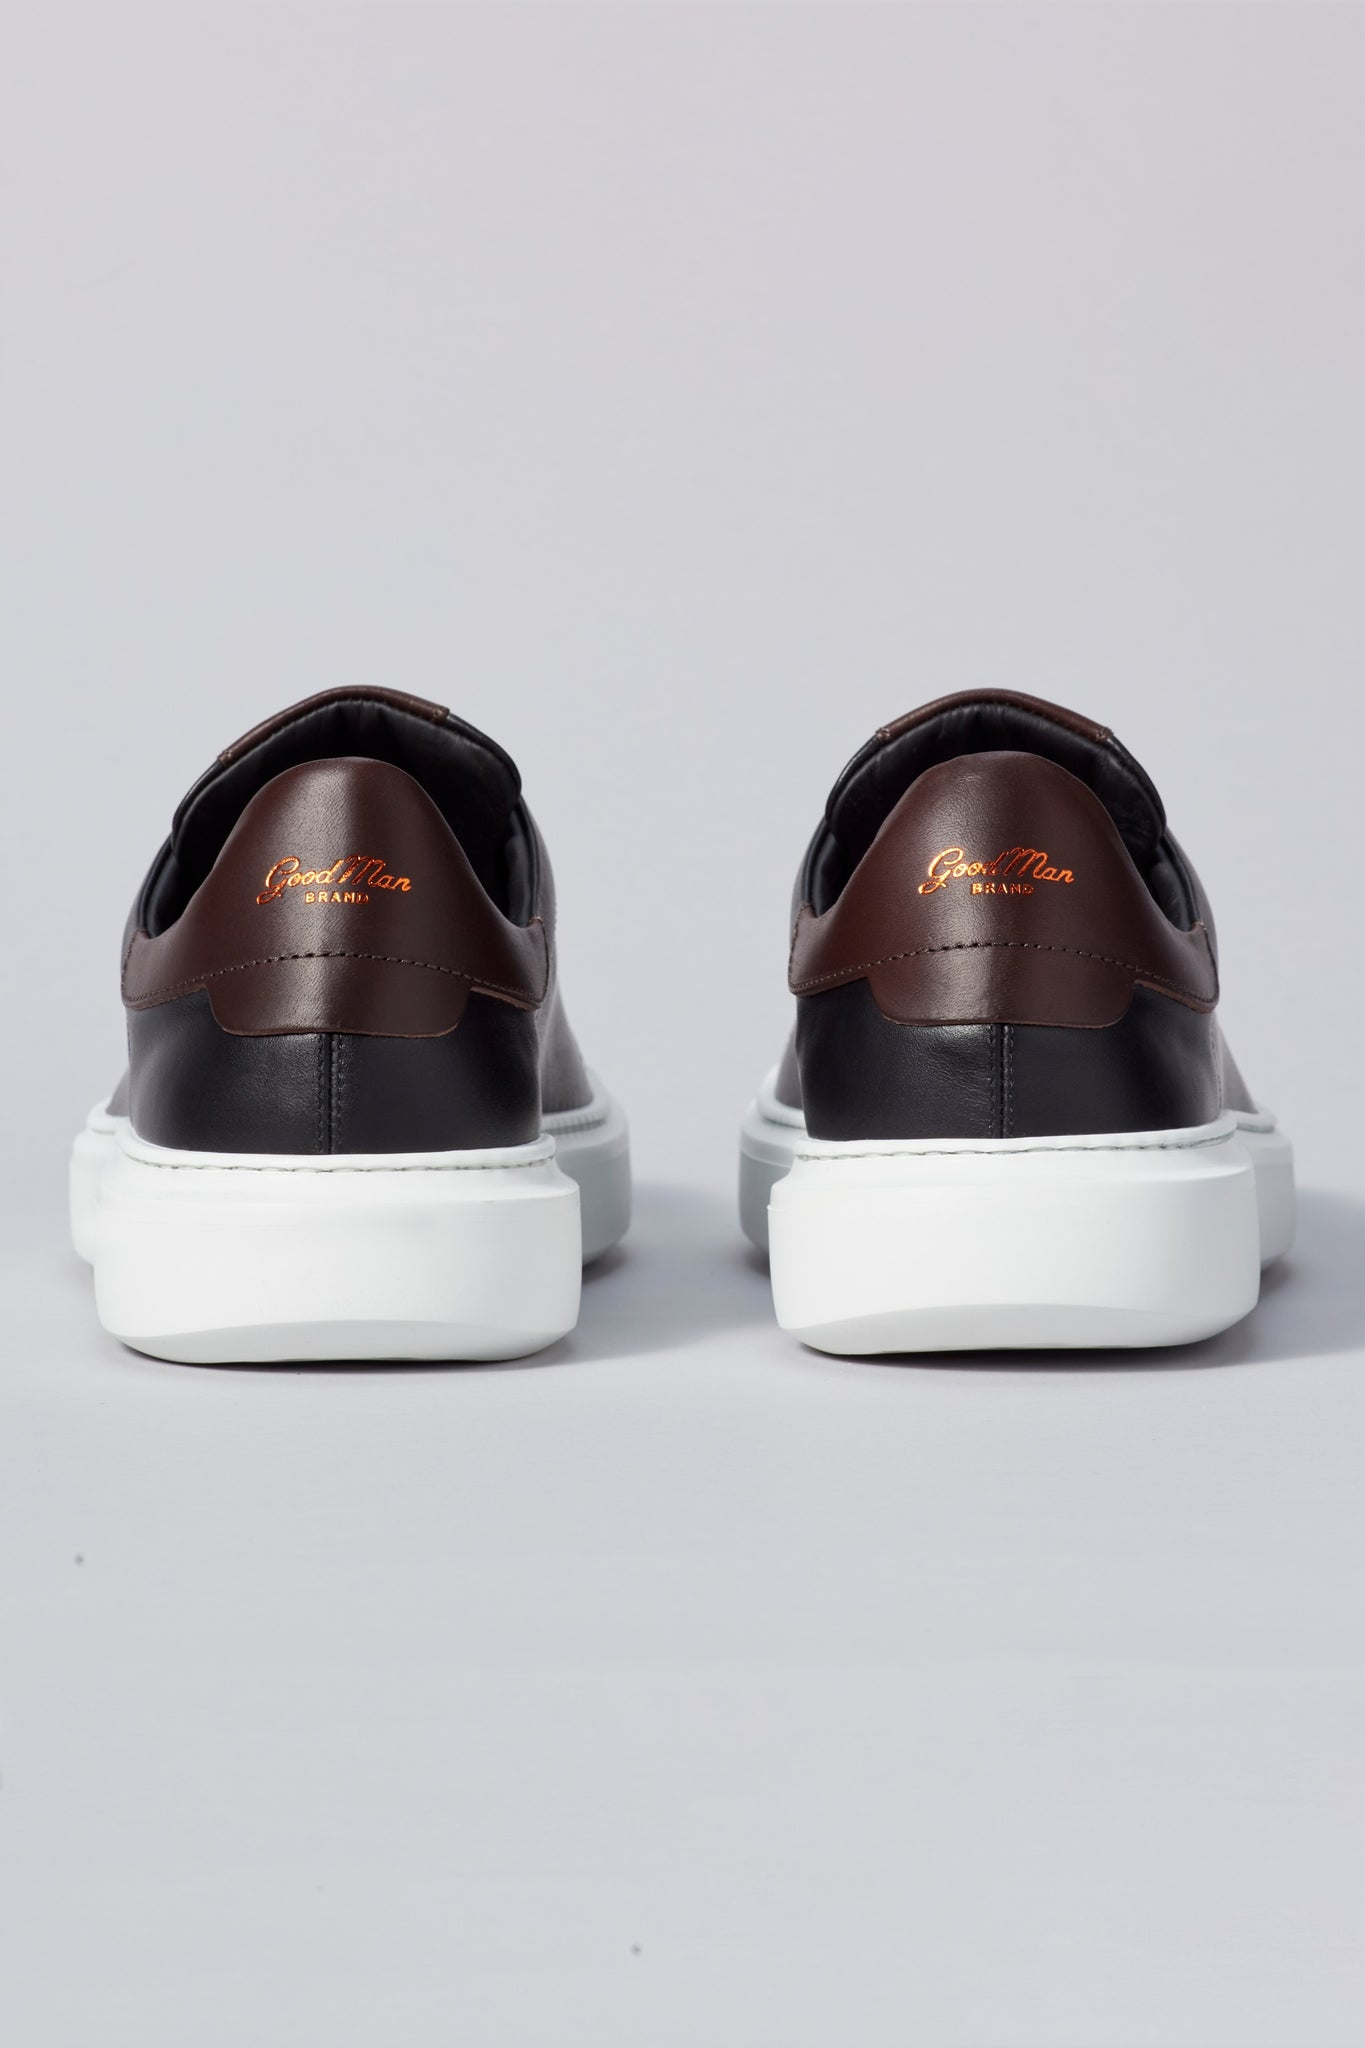 Legend London Classic Sneaker - Black / Dark Vachetta